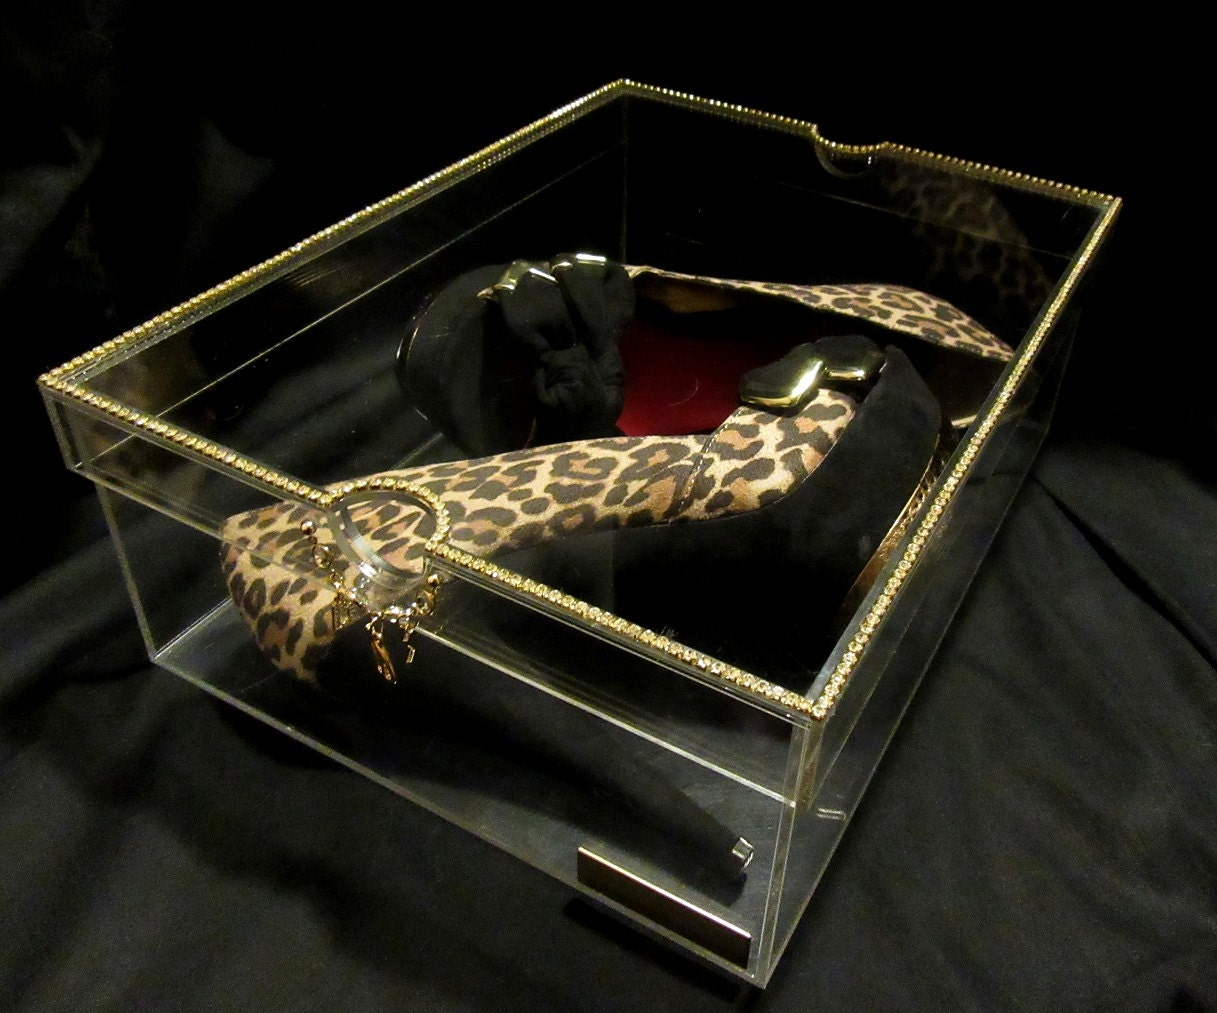 Acrylic shoe boxes : Rhinestone acrylic shoe box dazzlebox glam